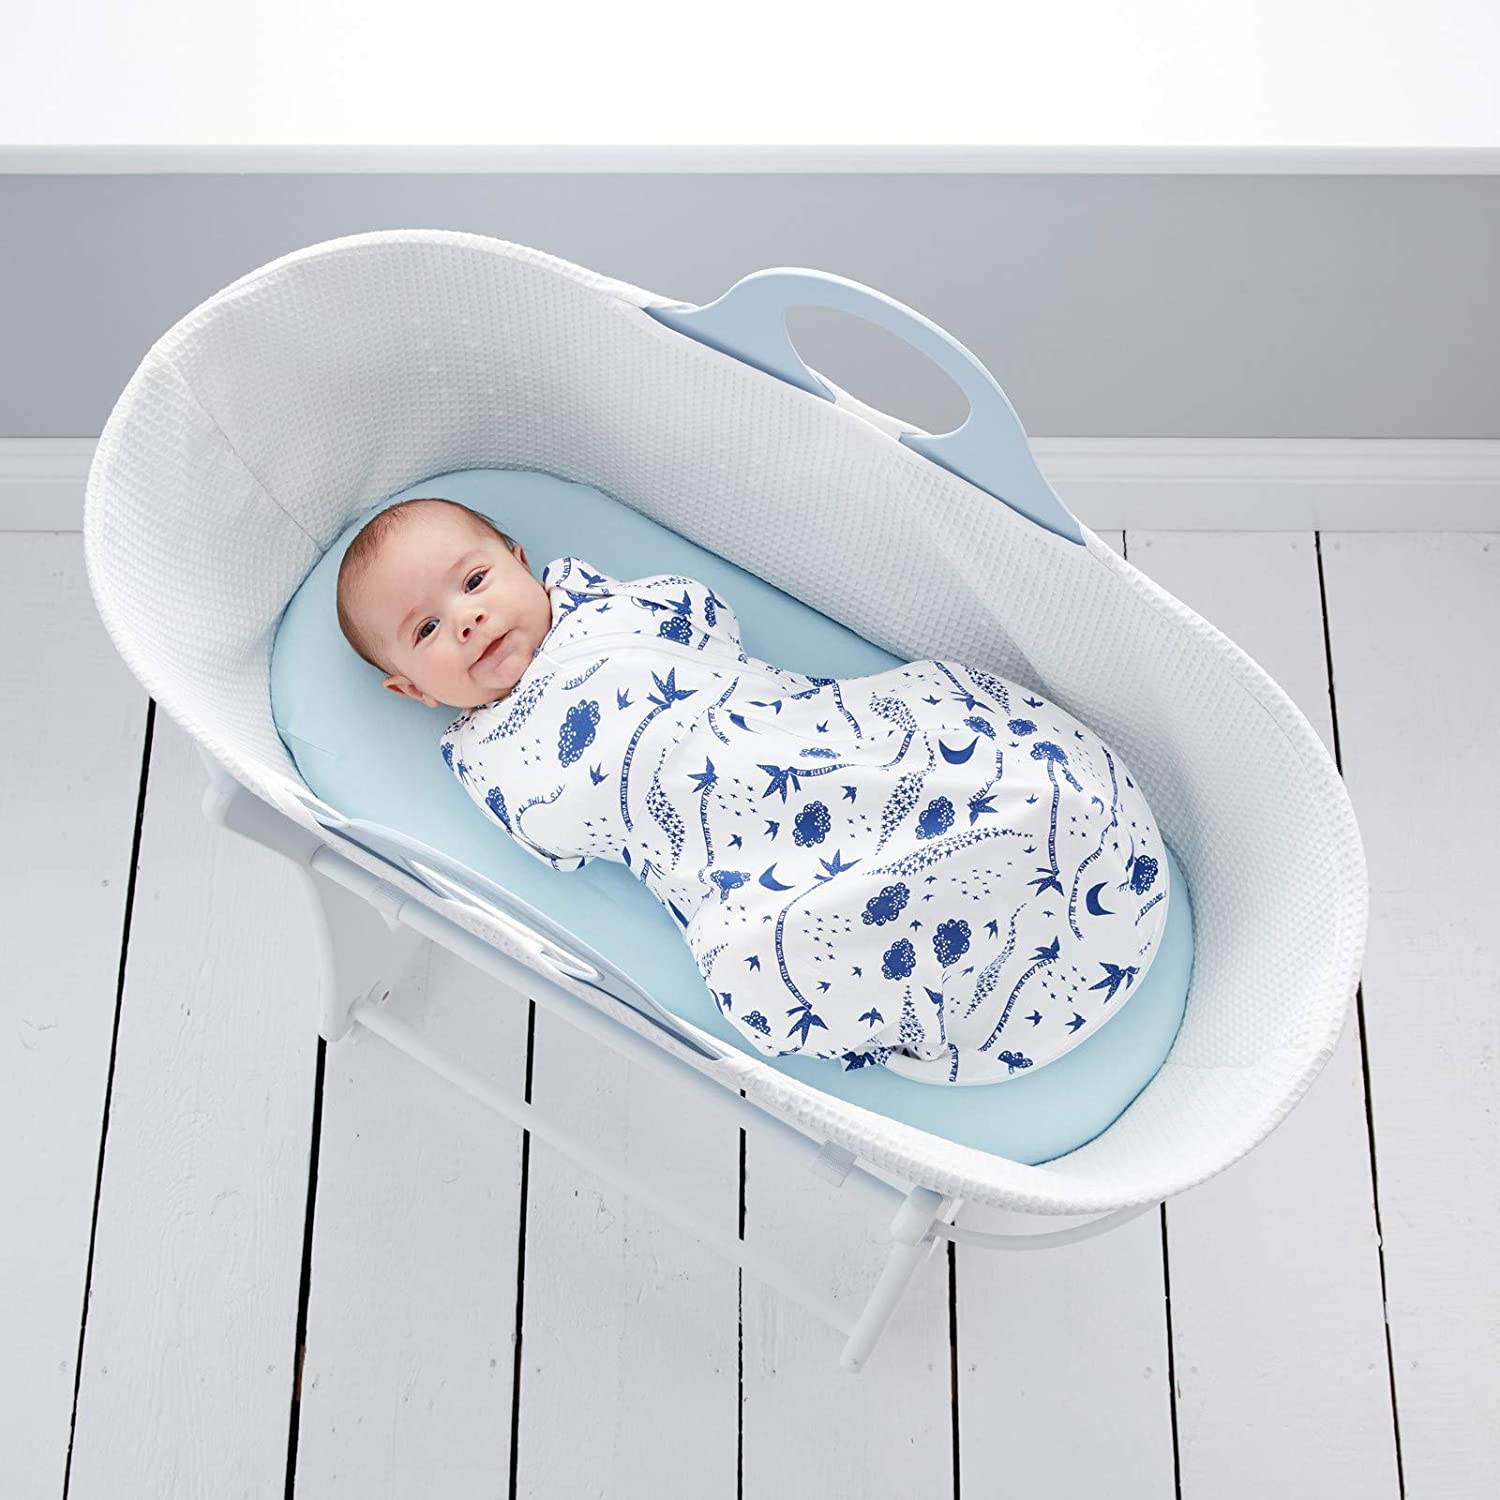 0-3 Months Cosy The Gro Company Rob Ryan Nightfall Grosnug 2-in-1 Swaddle and Newborn Grobag